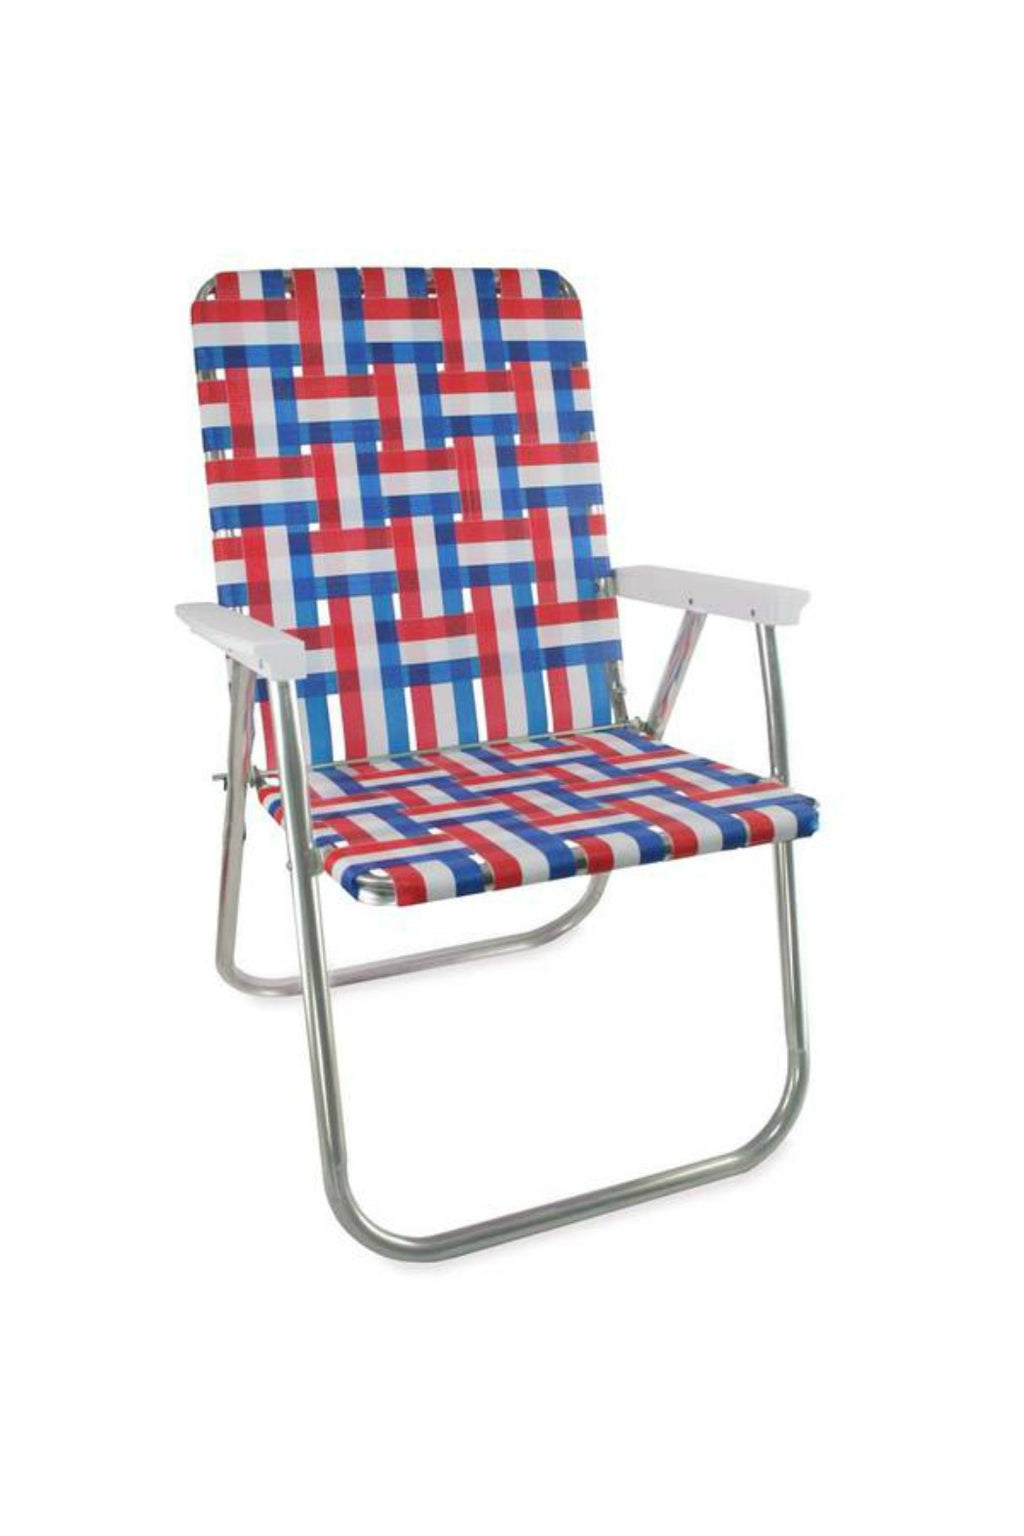 Lawn Chair USA Picnic Lawn Chair - Old Glory